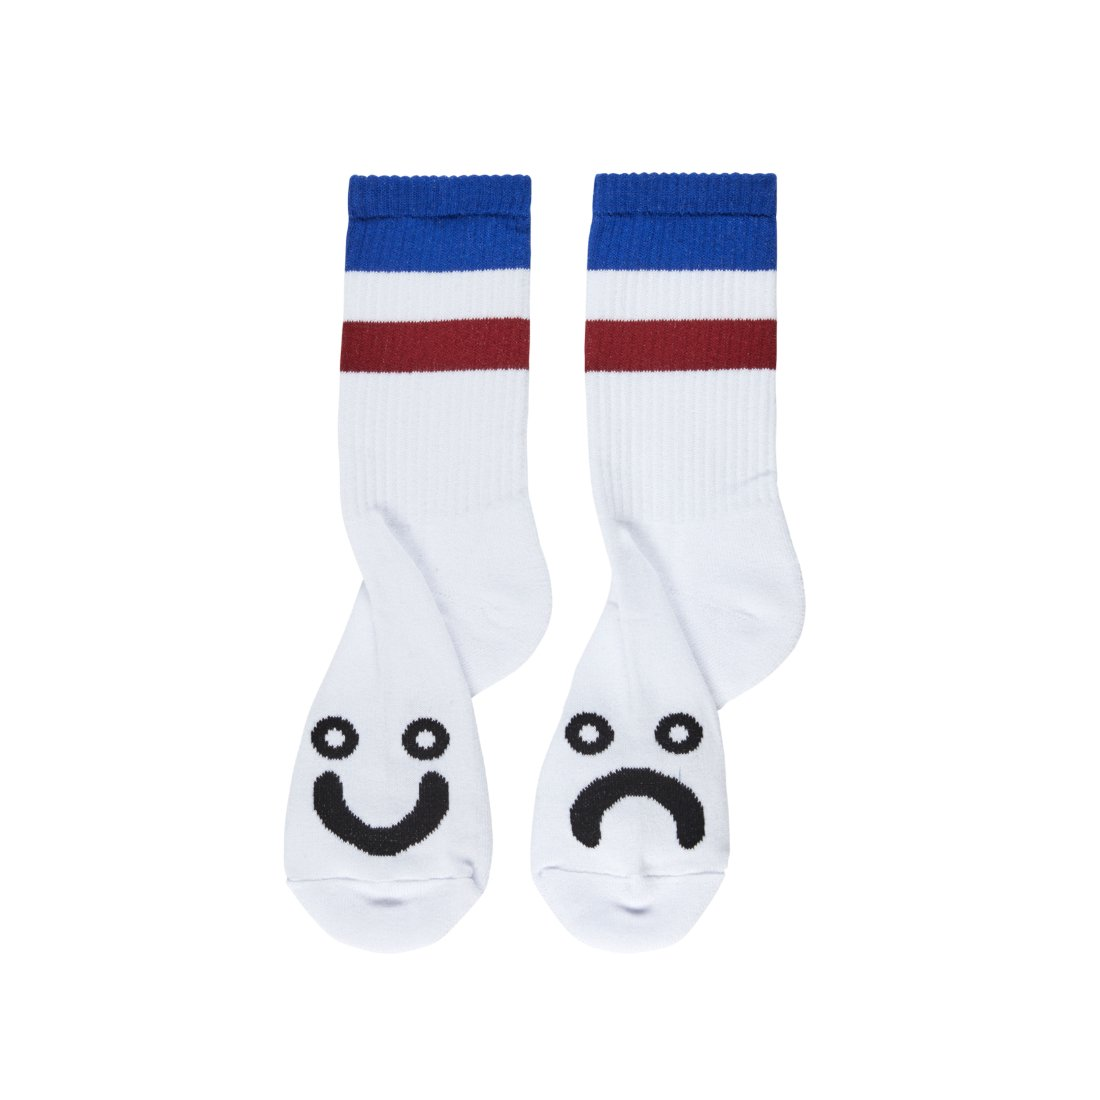 【POLAR SKATE CO.】Happy sad socks - Stripes Blue